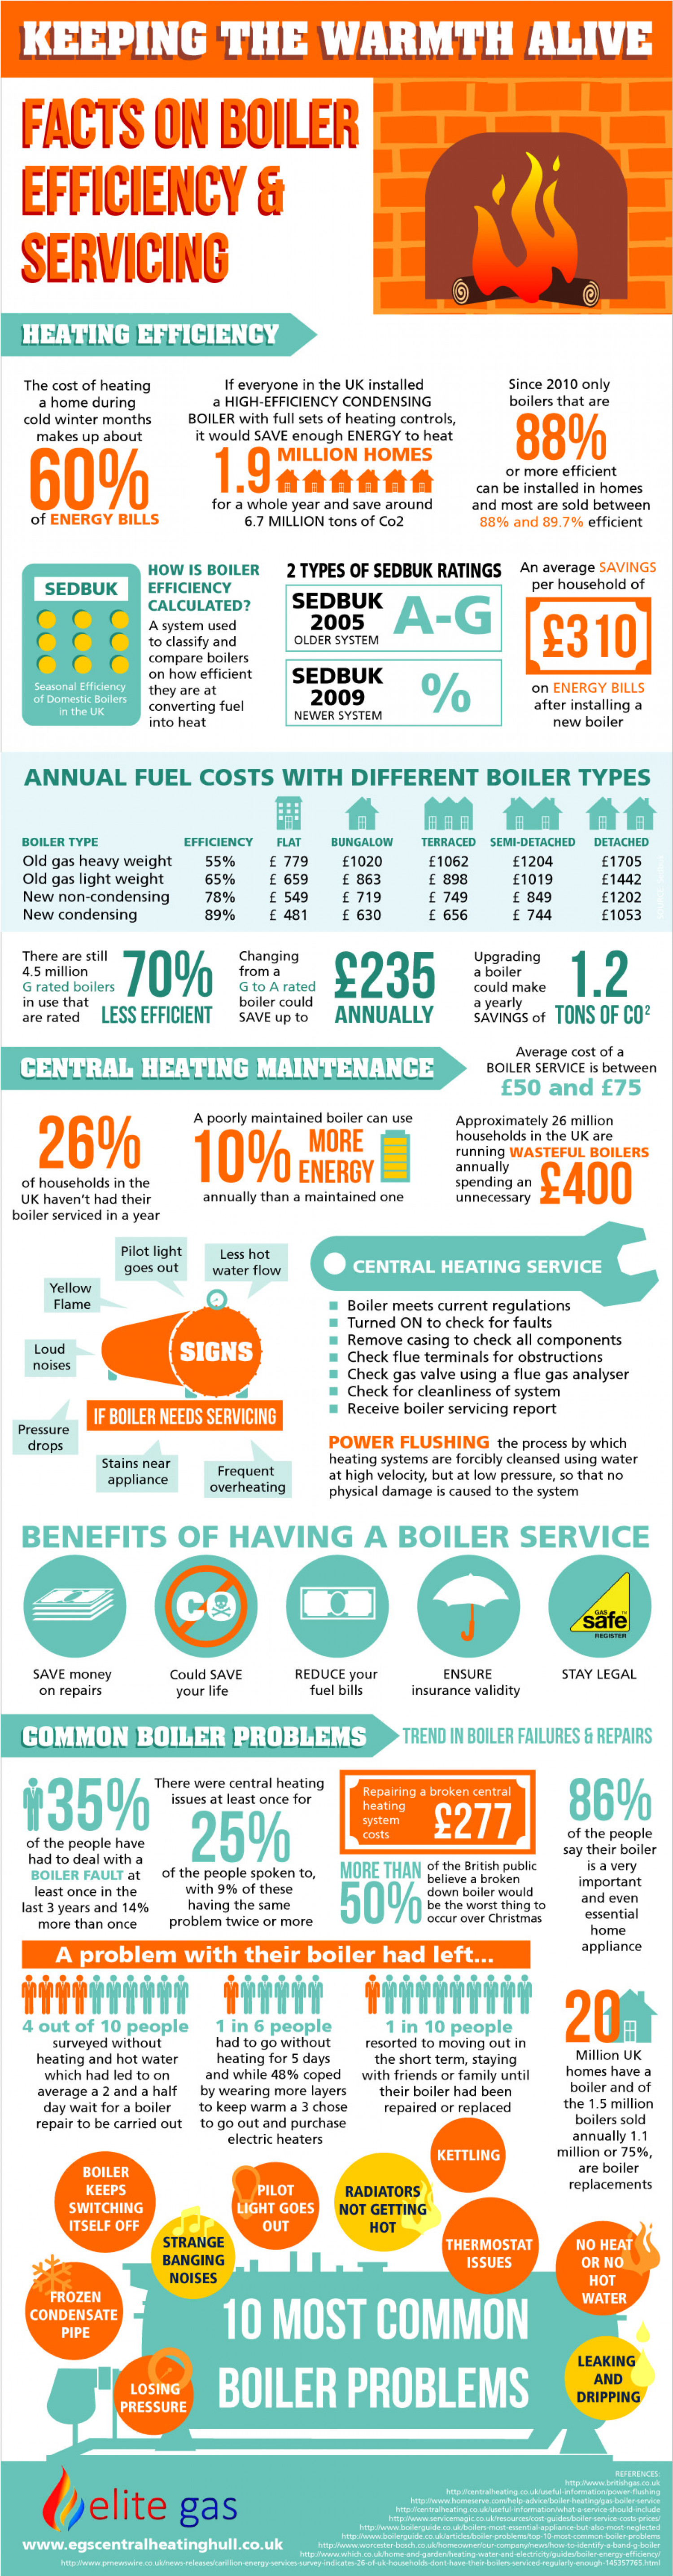 Keeping the Warmth Alive: Facts on Boiler Efficiency and Servicing Infographic